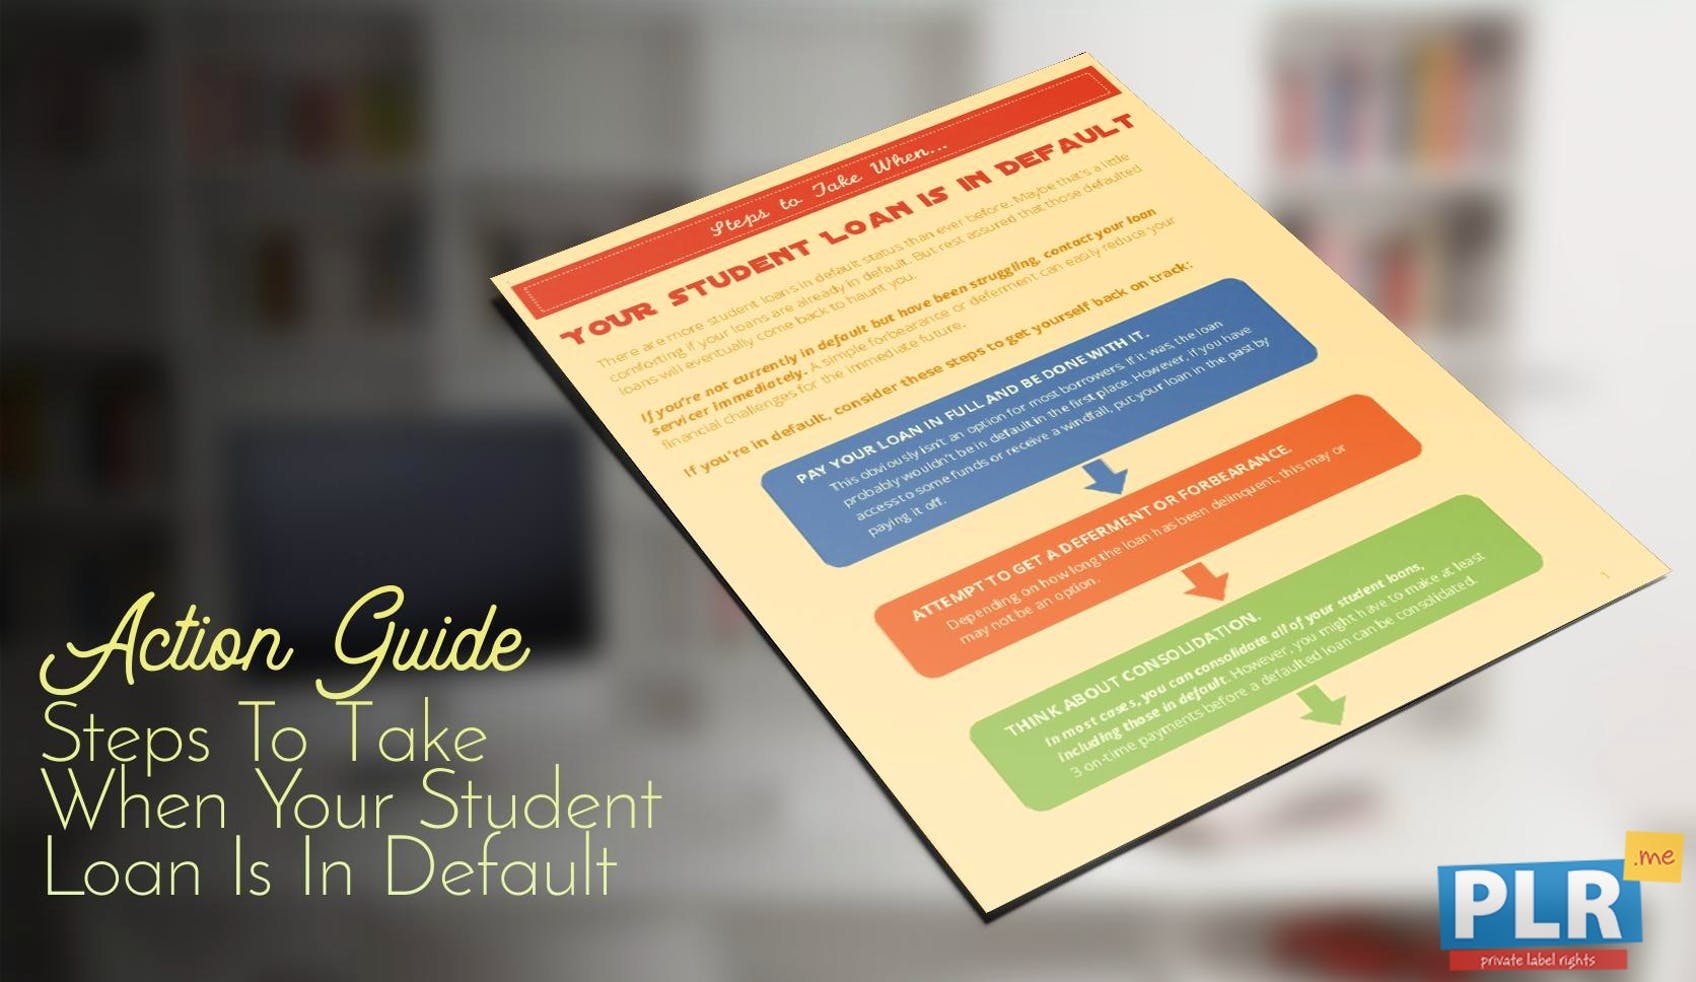 Steps To Take When Your Student Loan Is In Default